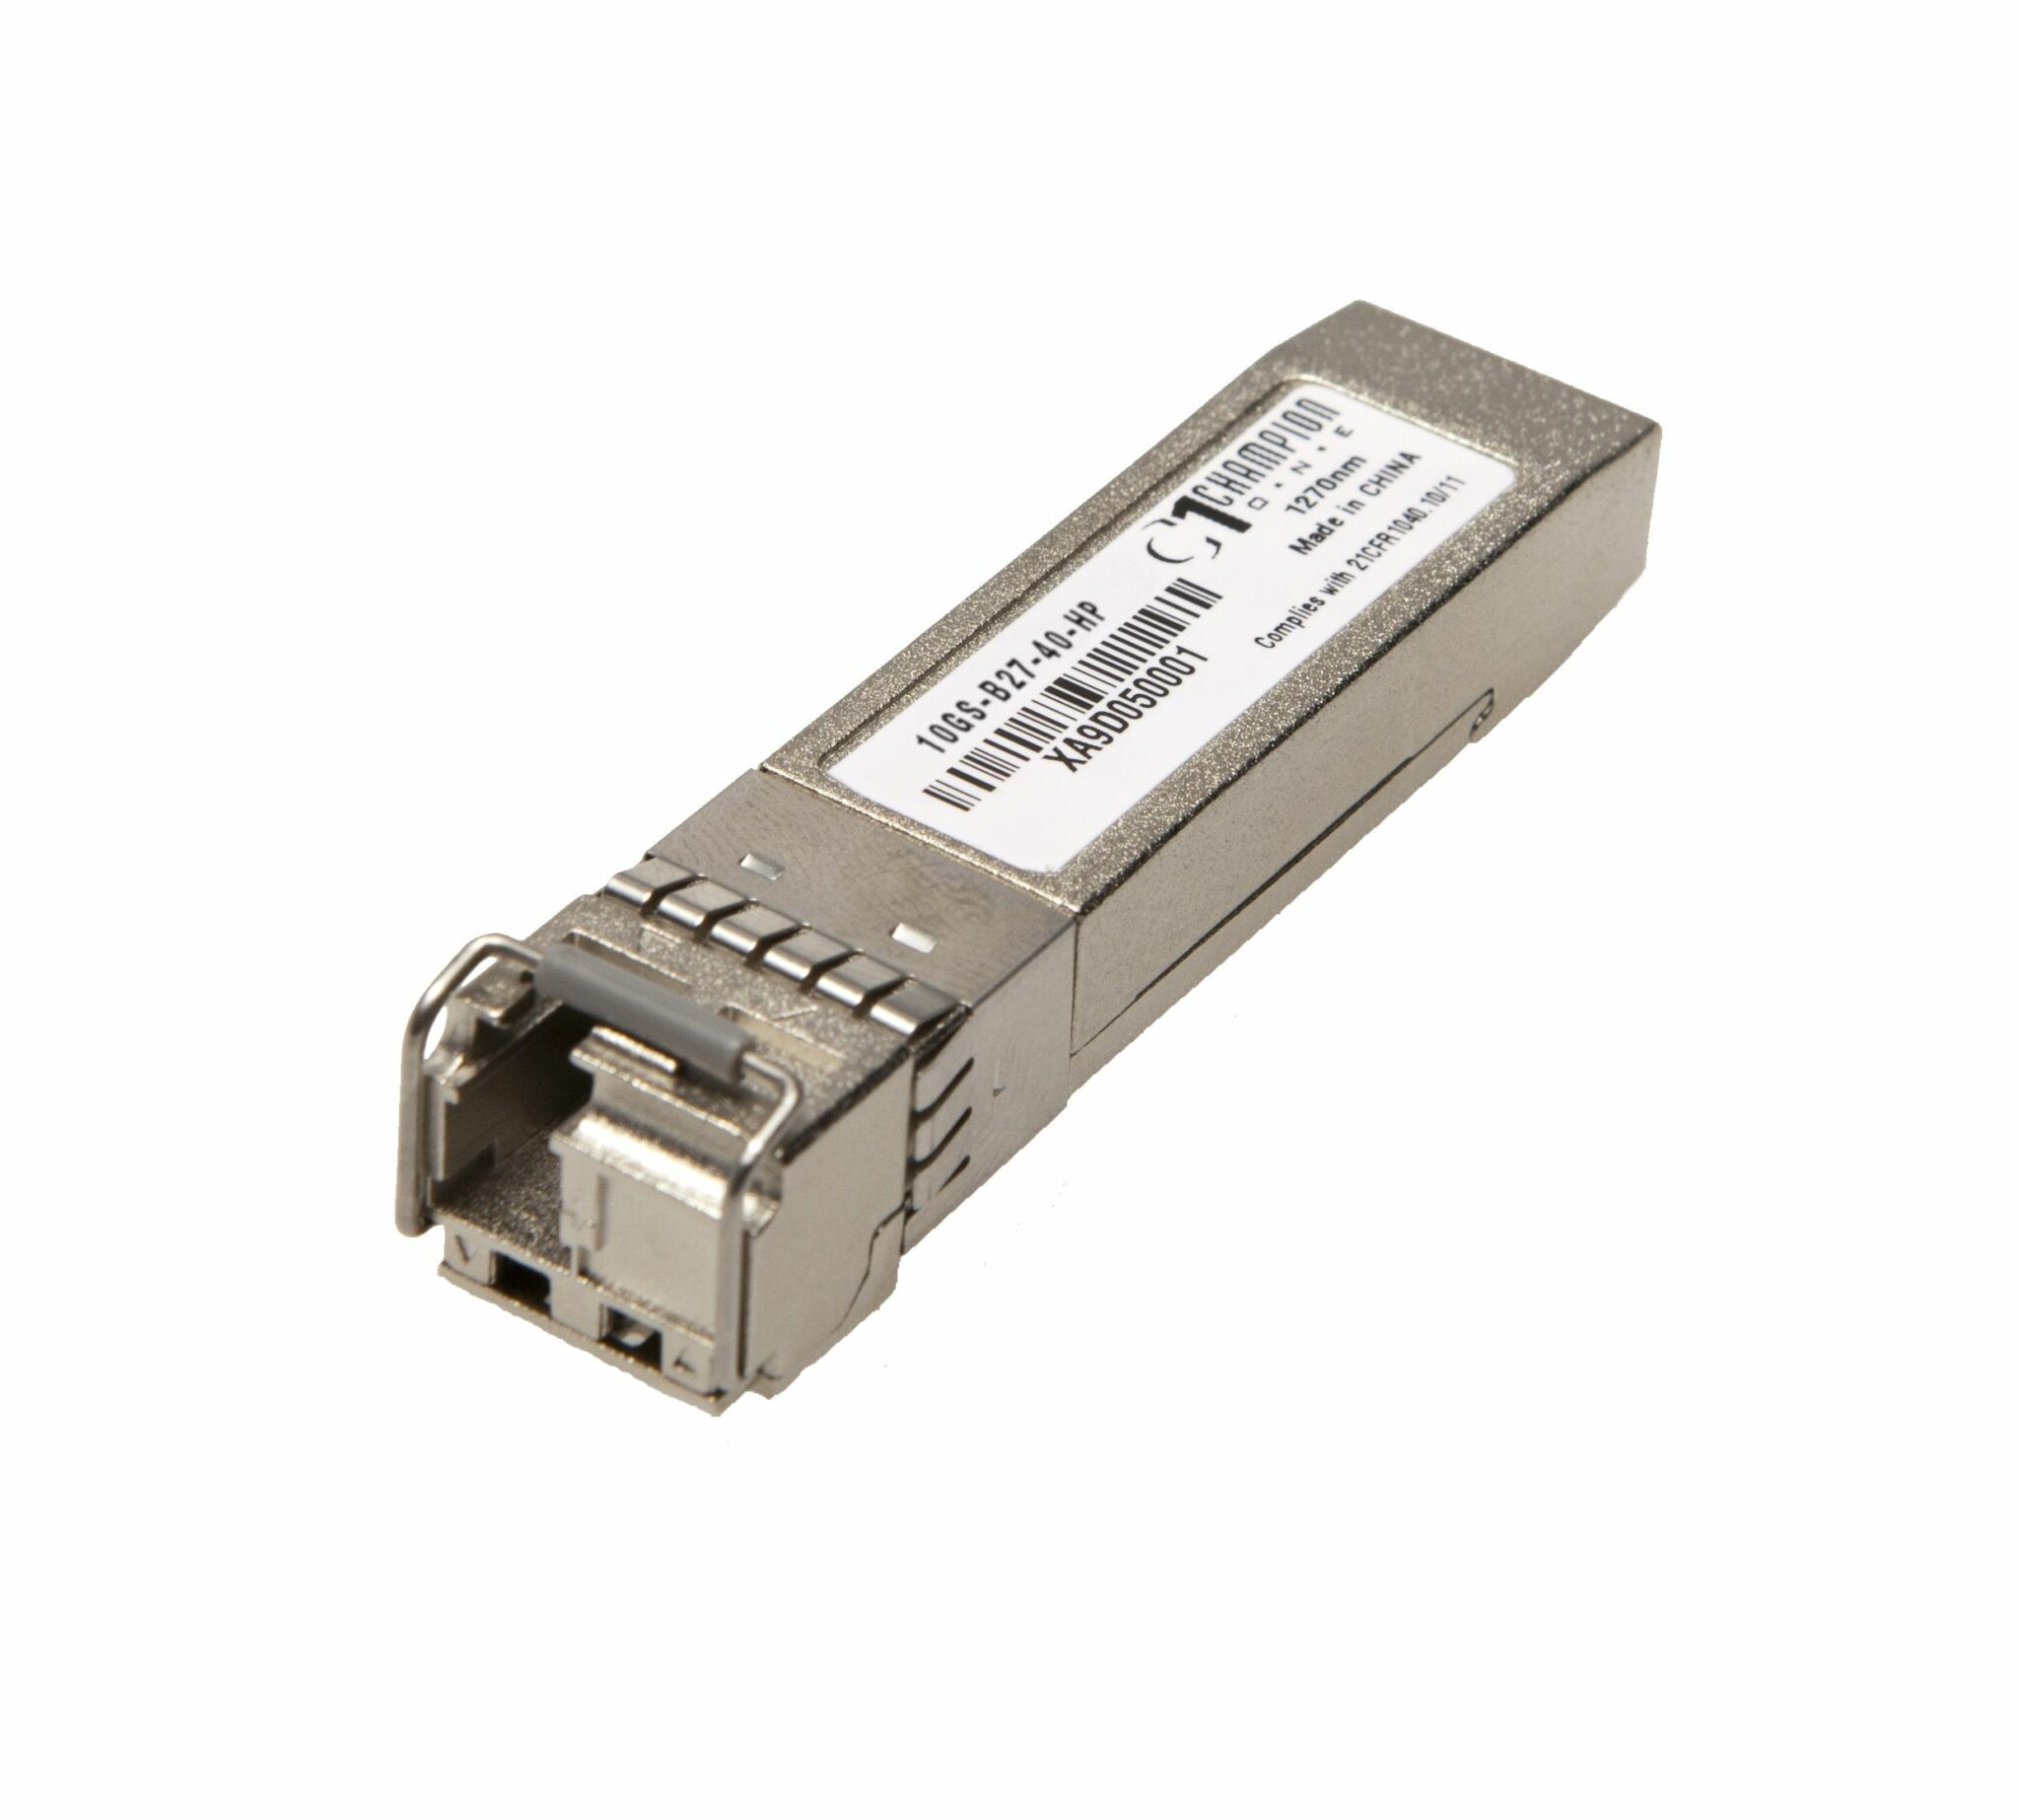 SFP+ SF 10GBase-ER 1270nm 40km Transceiver, HP Systems compatible